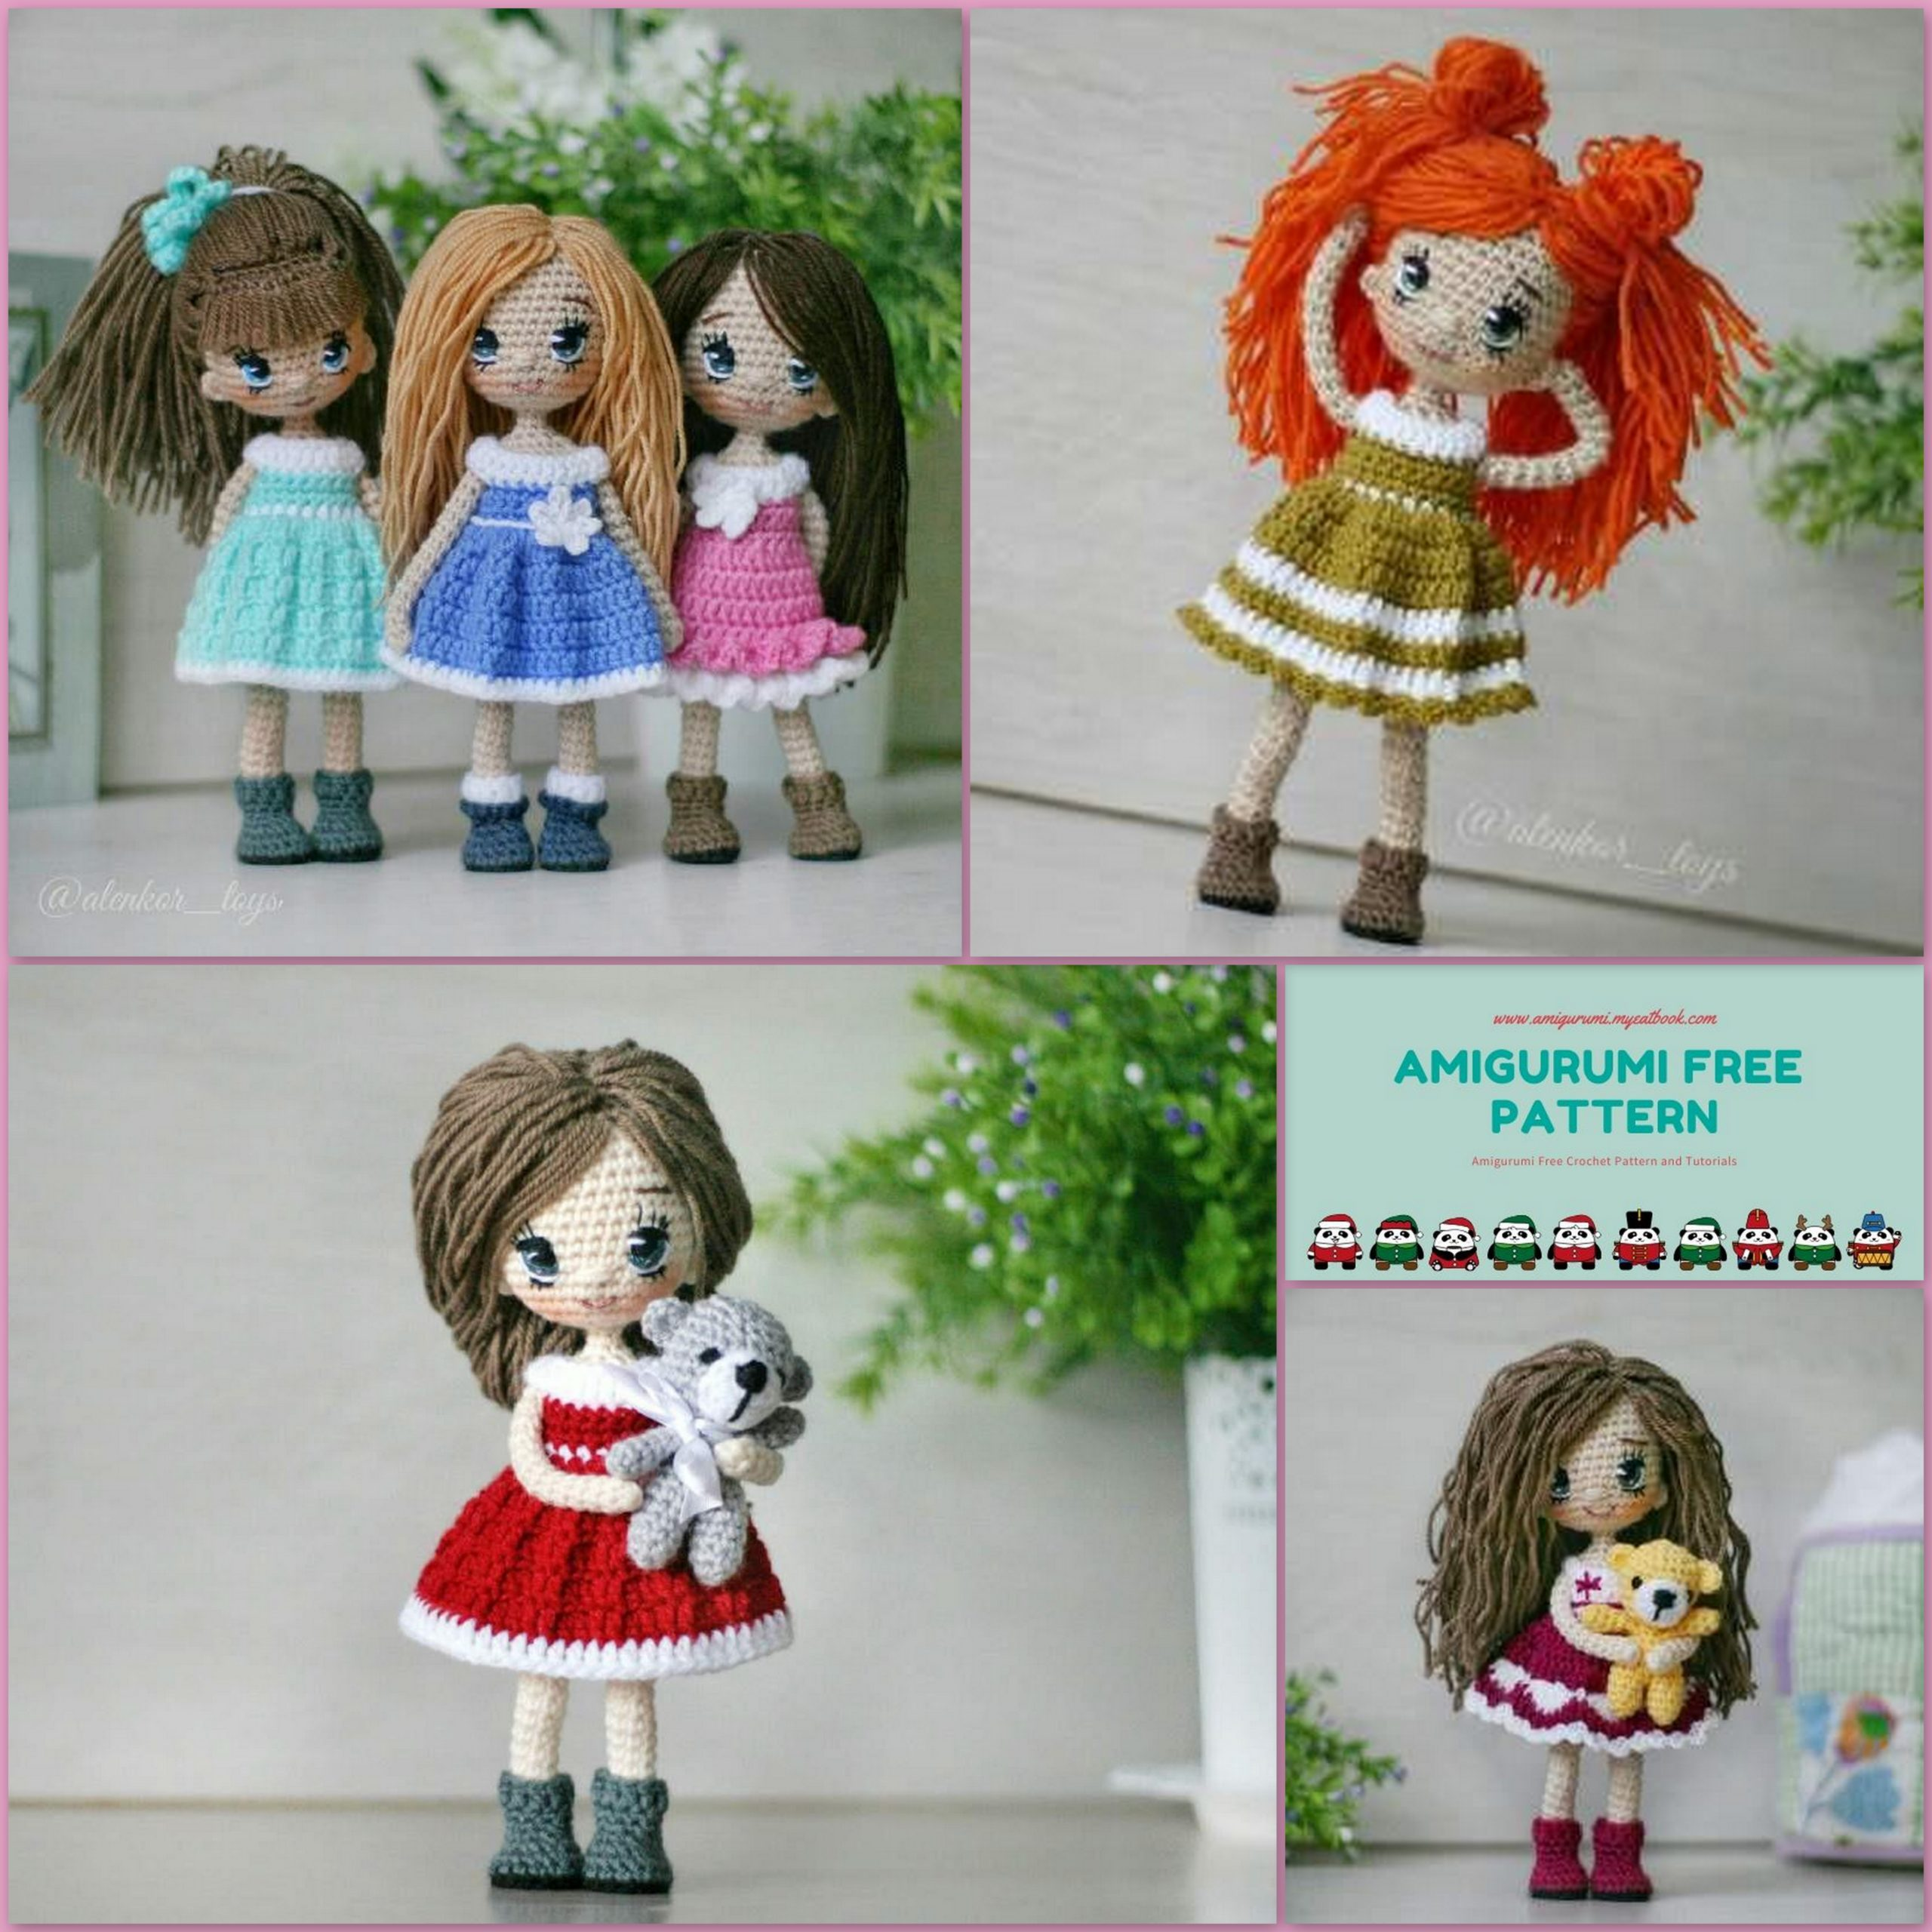 Amigurumi Cute Doll Free Pattern (With images) | Crochet dolls ... | 2560x2560